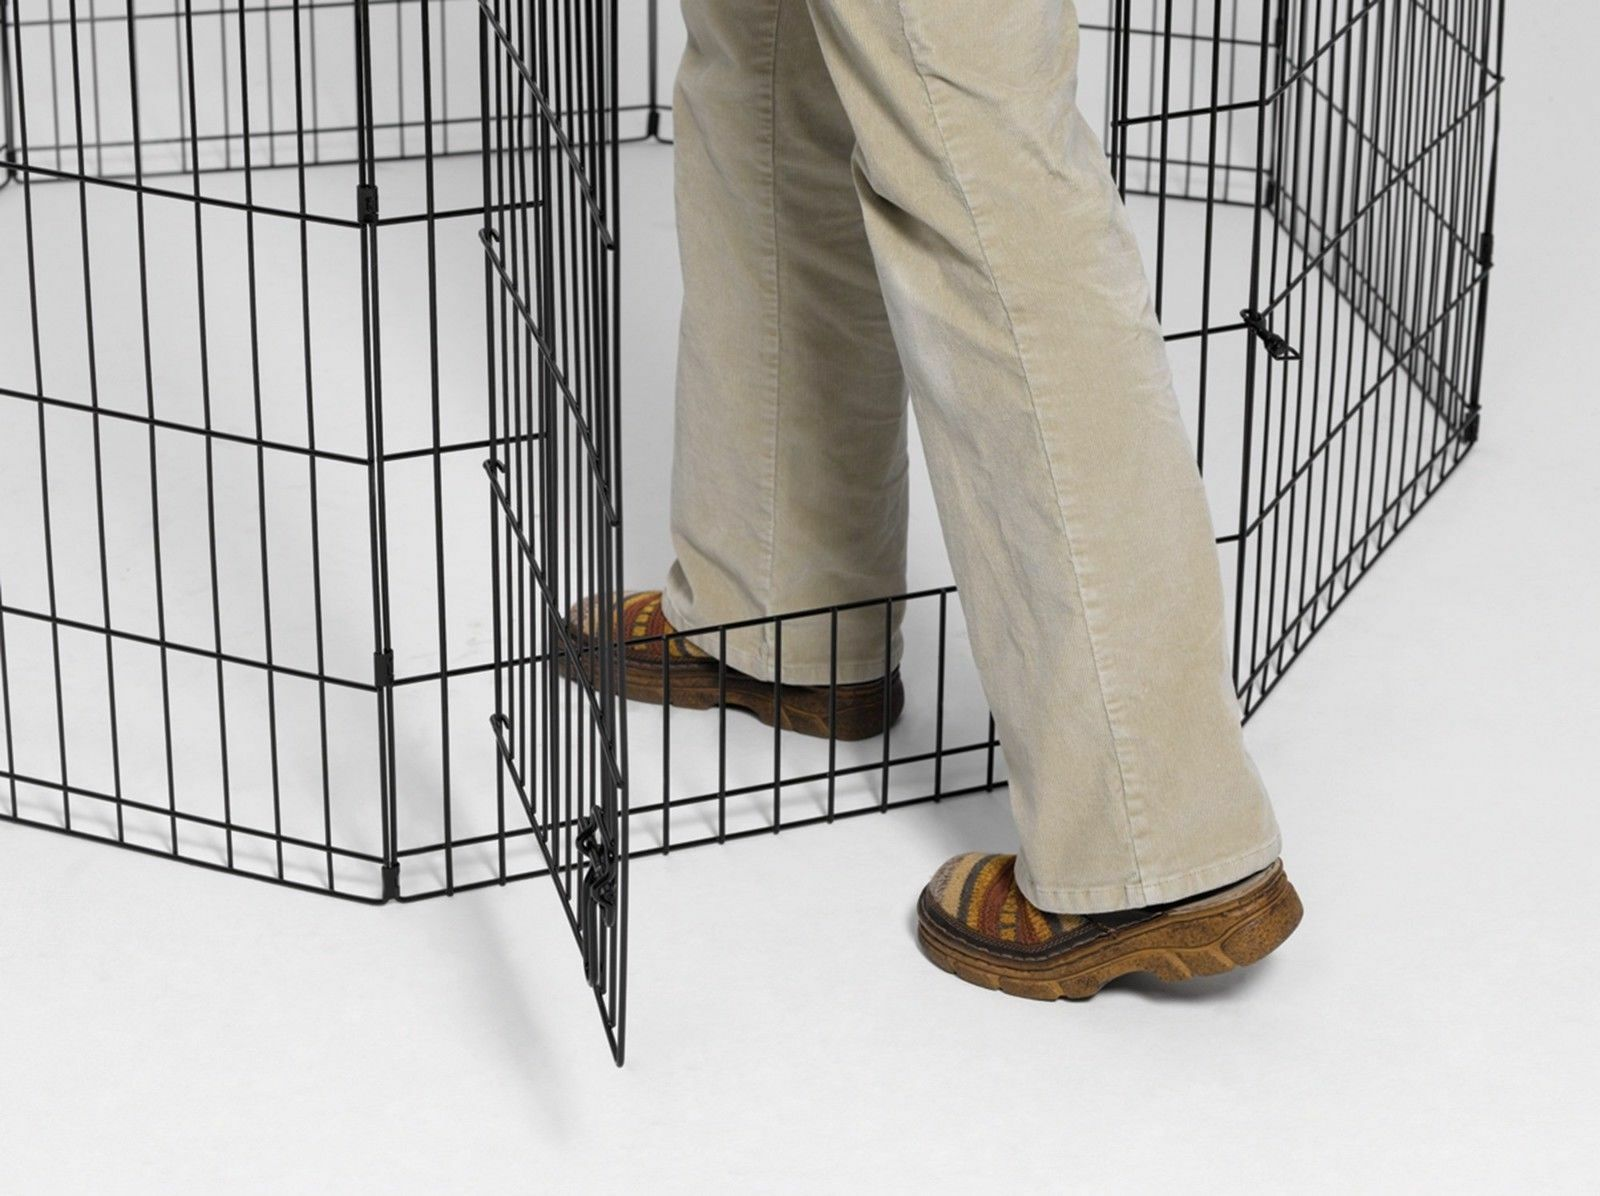 48  Dog Exercise Play Play Play Pen Folding Indoor Outdoor Cage Fence Pet Large Kennel b37e17